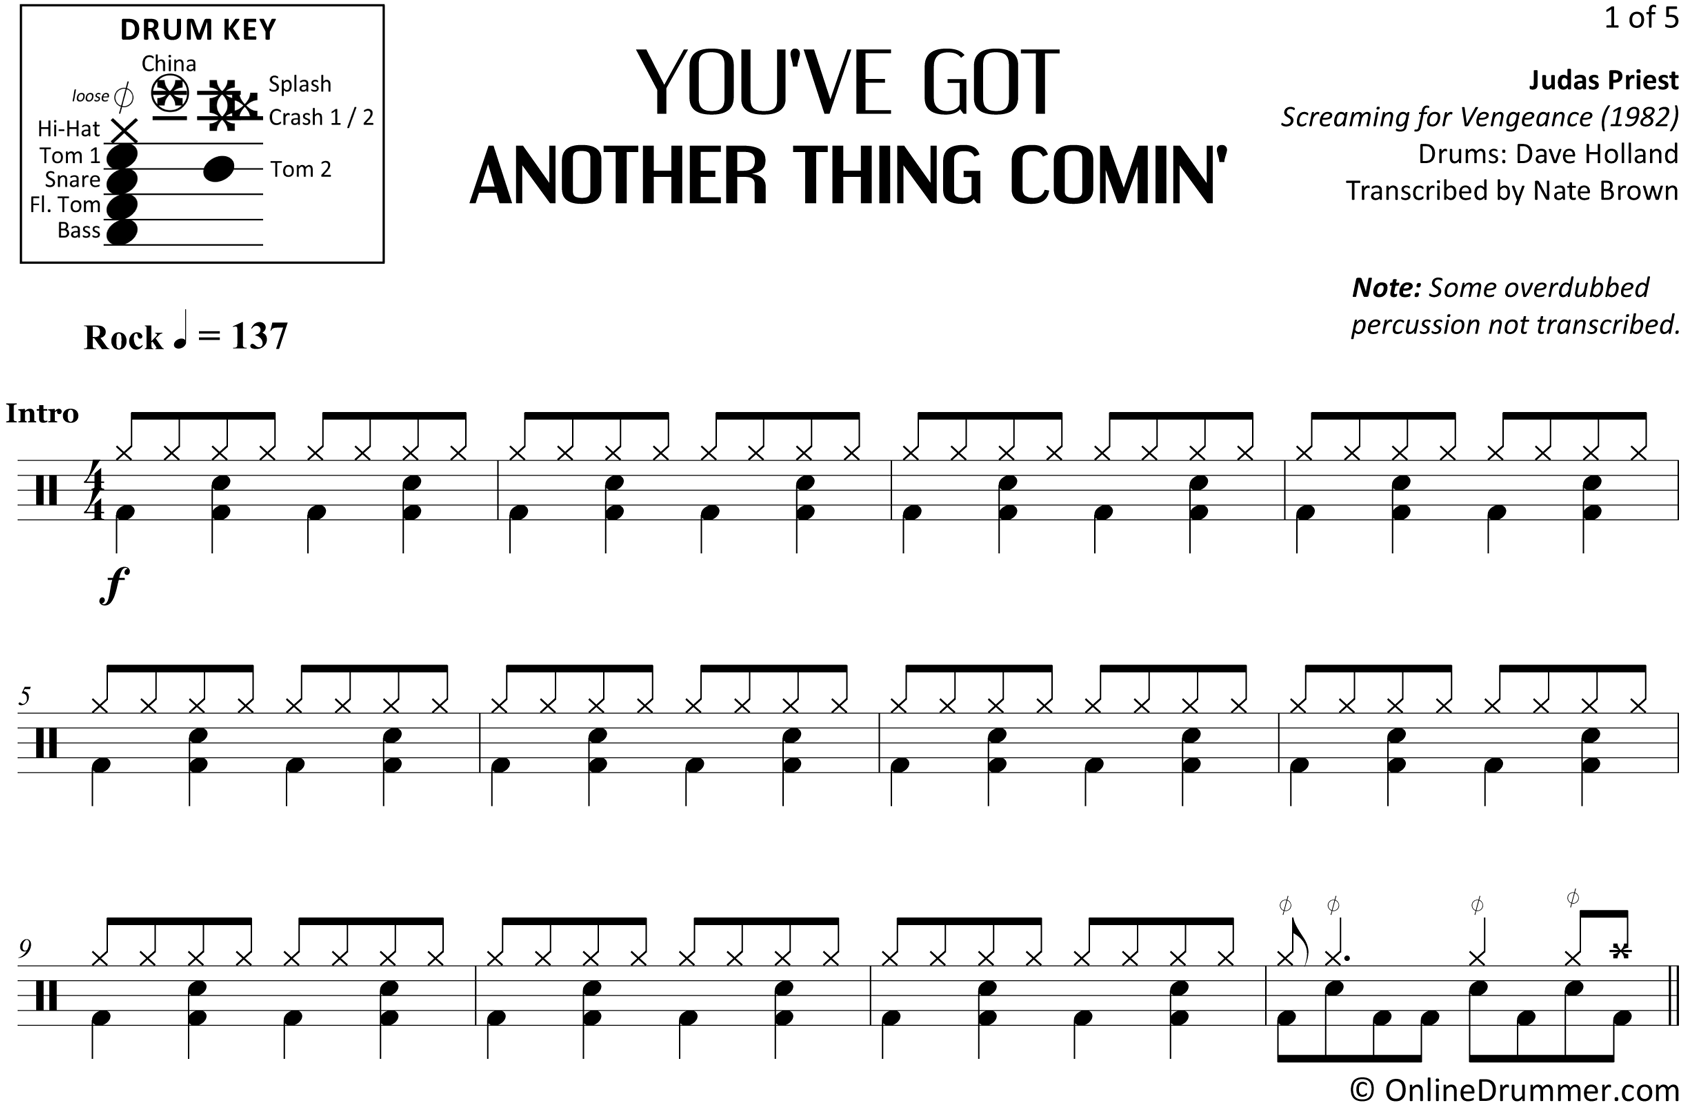 You've Got Another Thing Comin' - Judas Priest - Drum Sheet Music